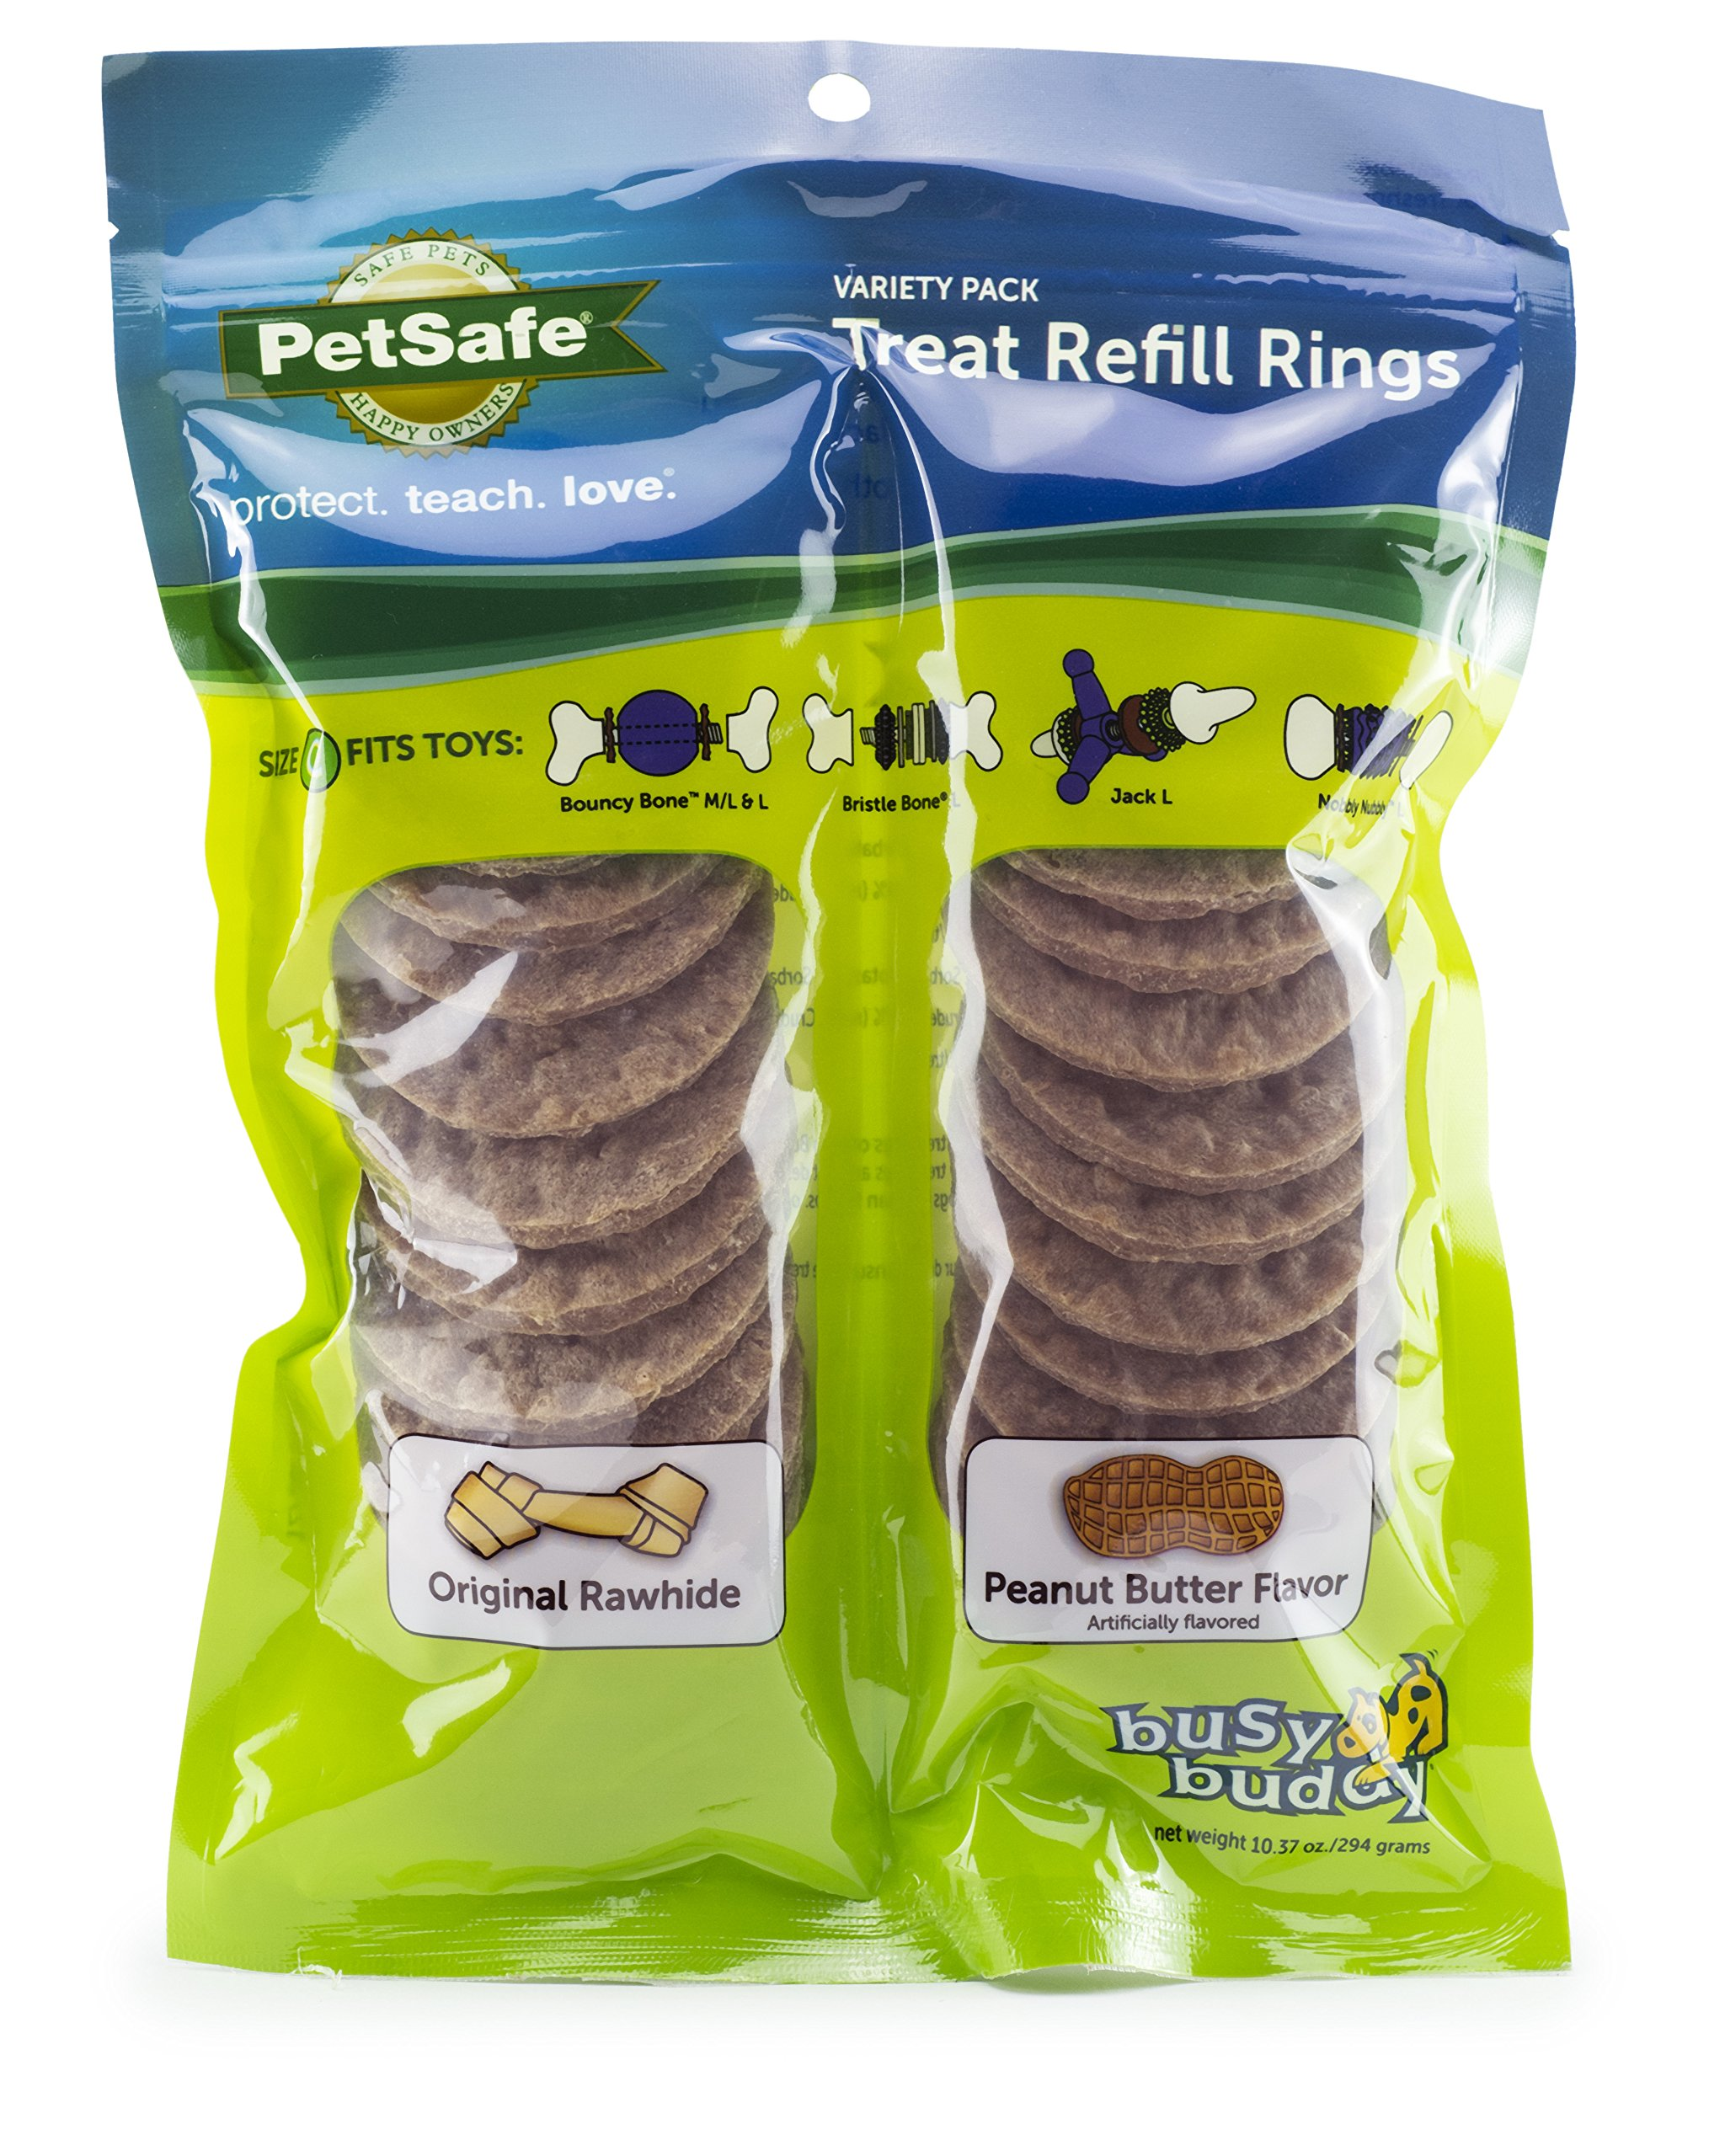 PetSafe Busy Buddy Variety Pack Treat Refill Rings, Size C